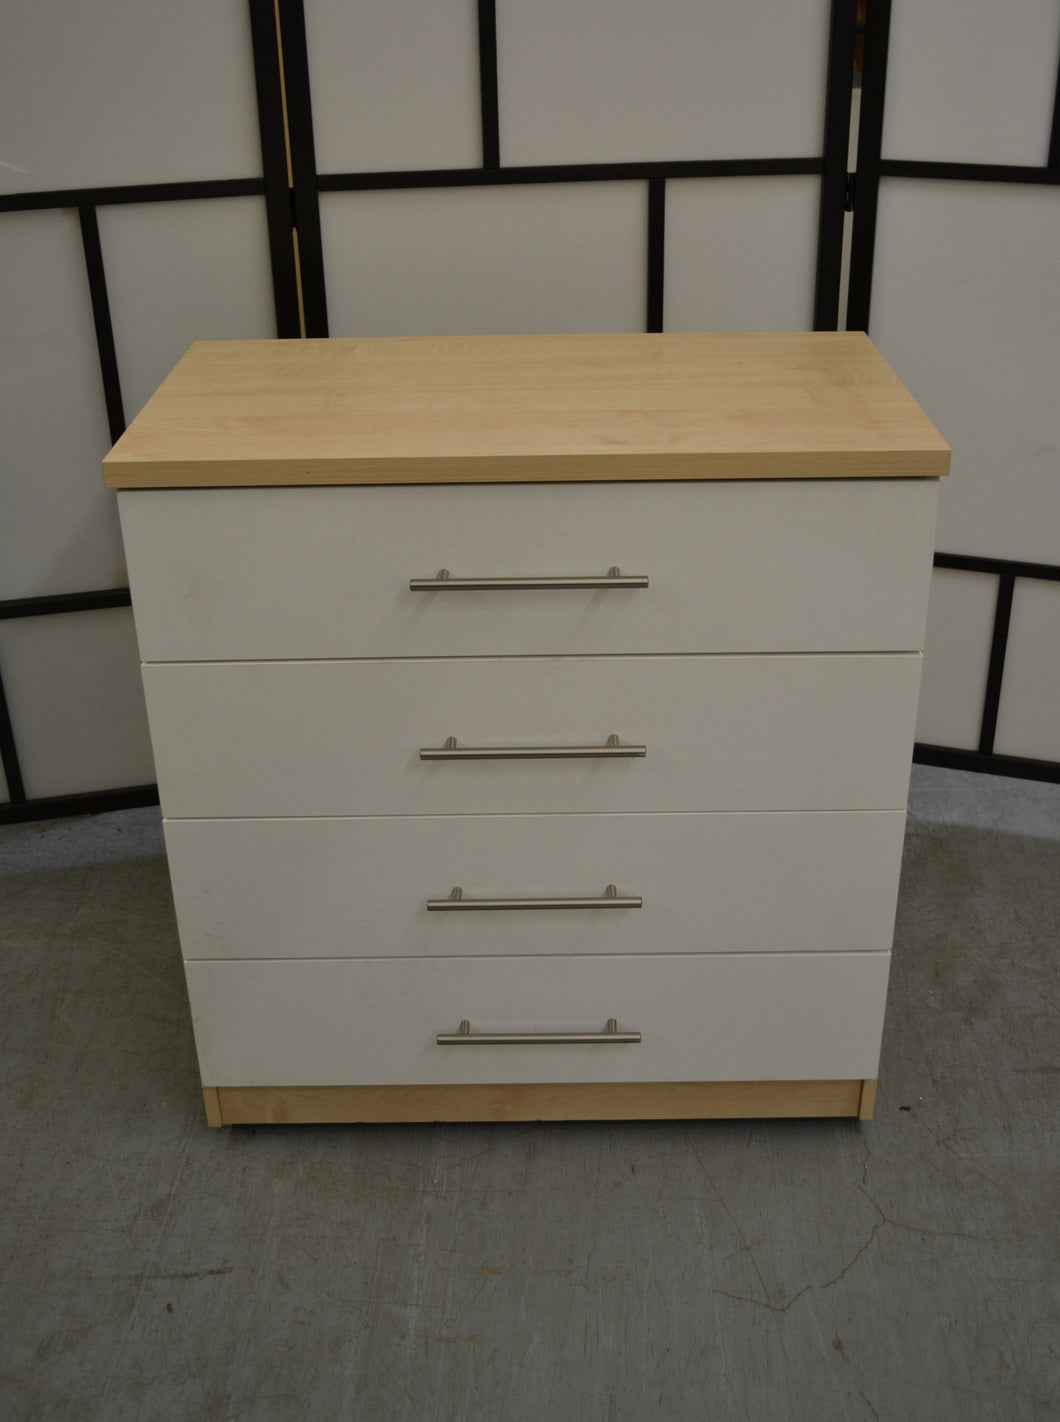 Modern 4 Drawer Chest Of Drawers With Castors - 190121-14